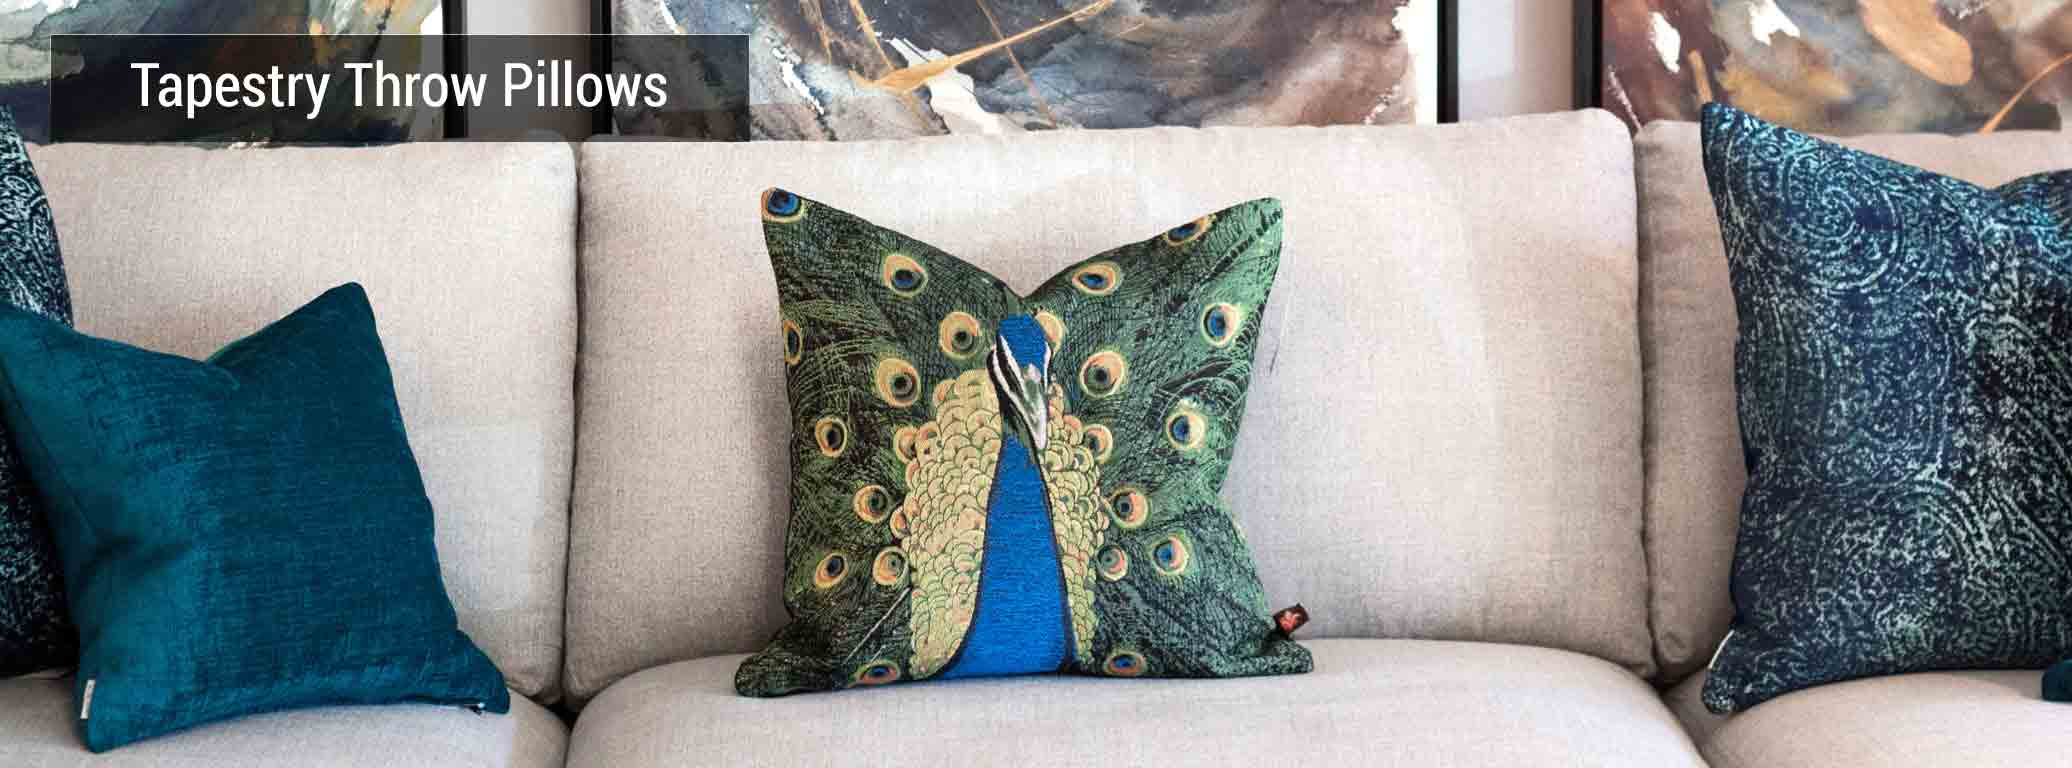 Tapestry Throw Pillows from Pillow Decor